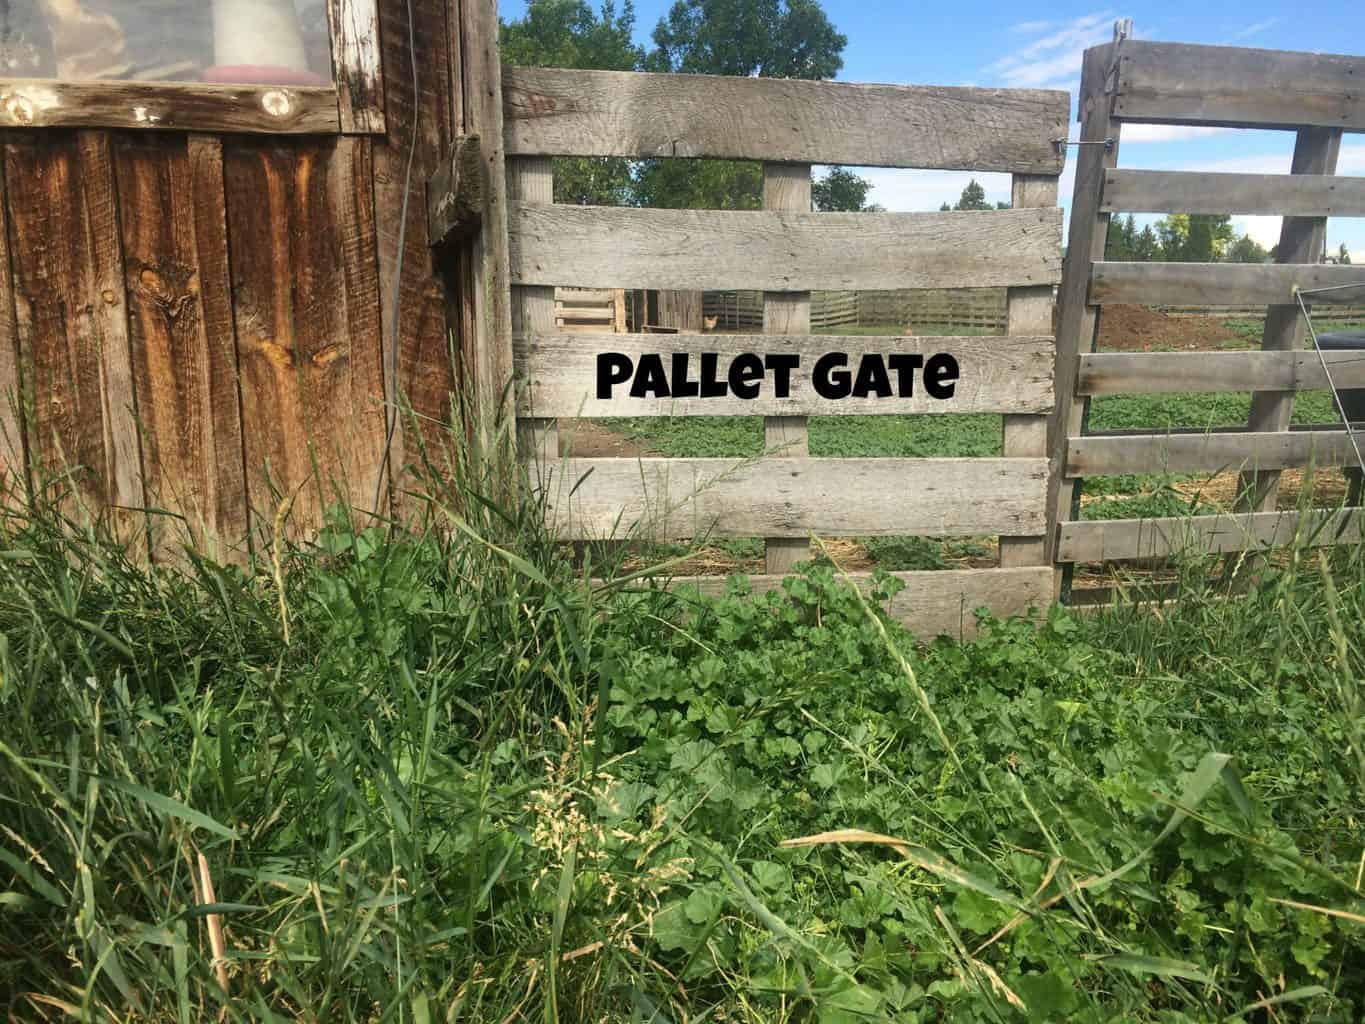 Pallet Fence: Great for small livestock